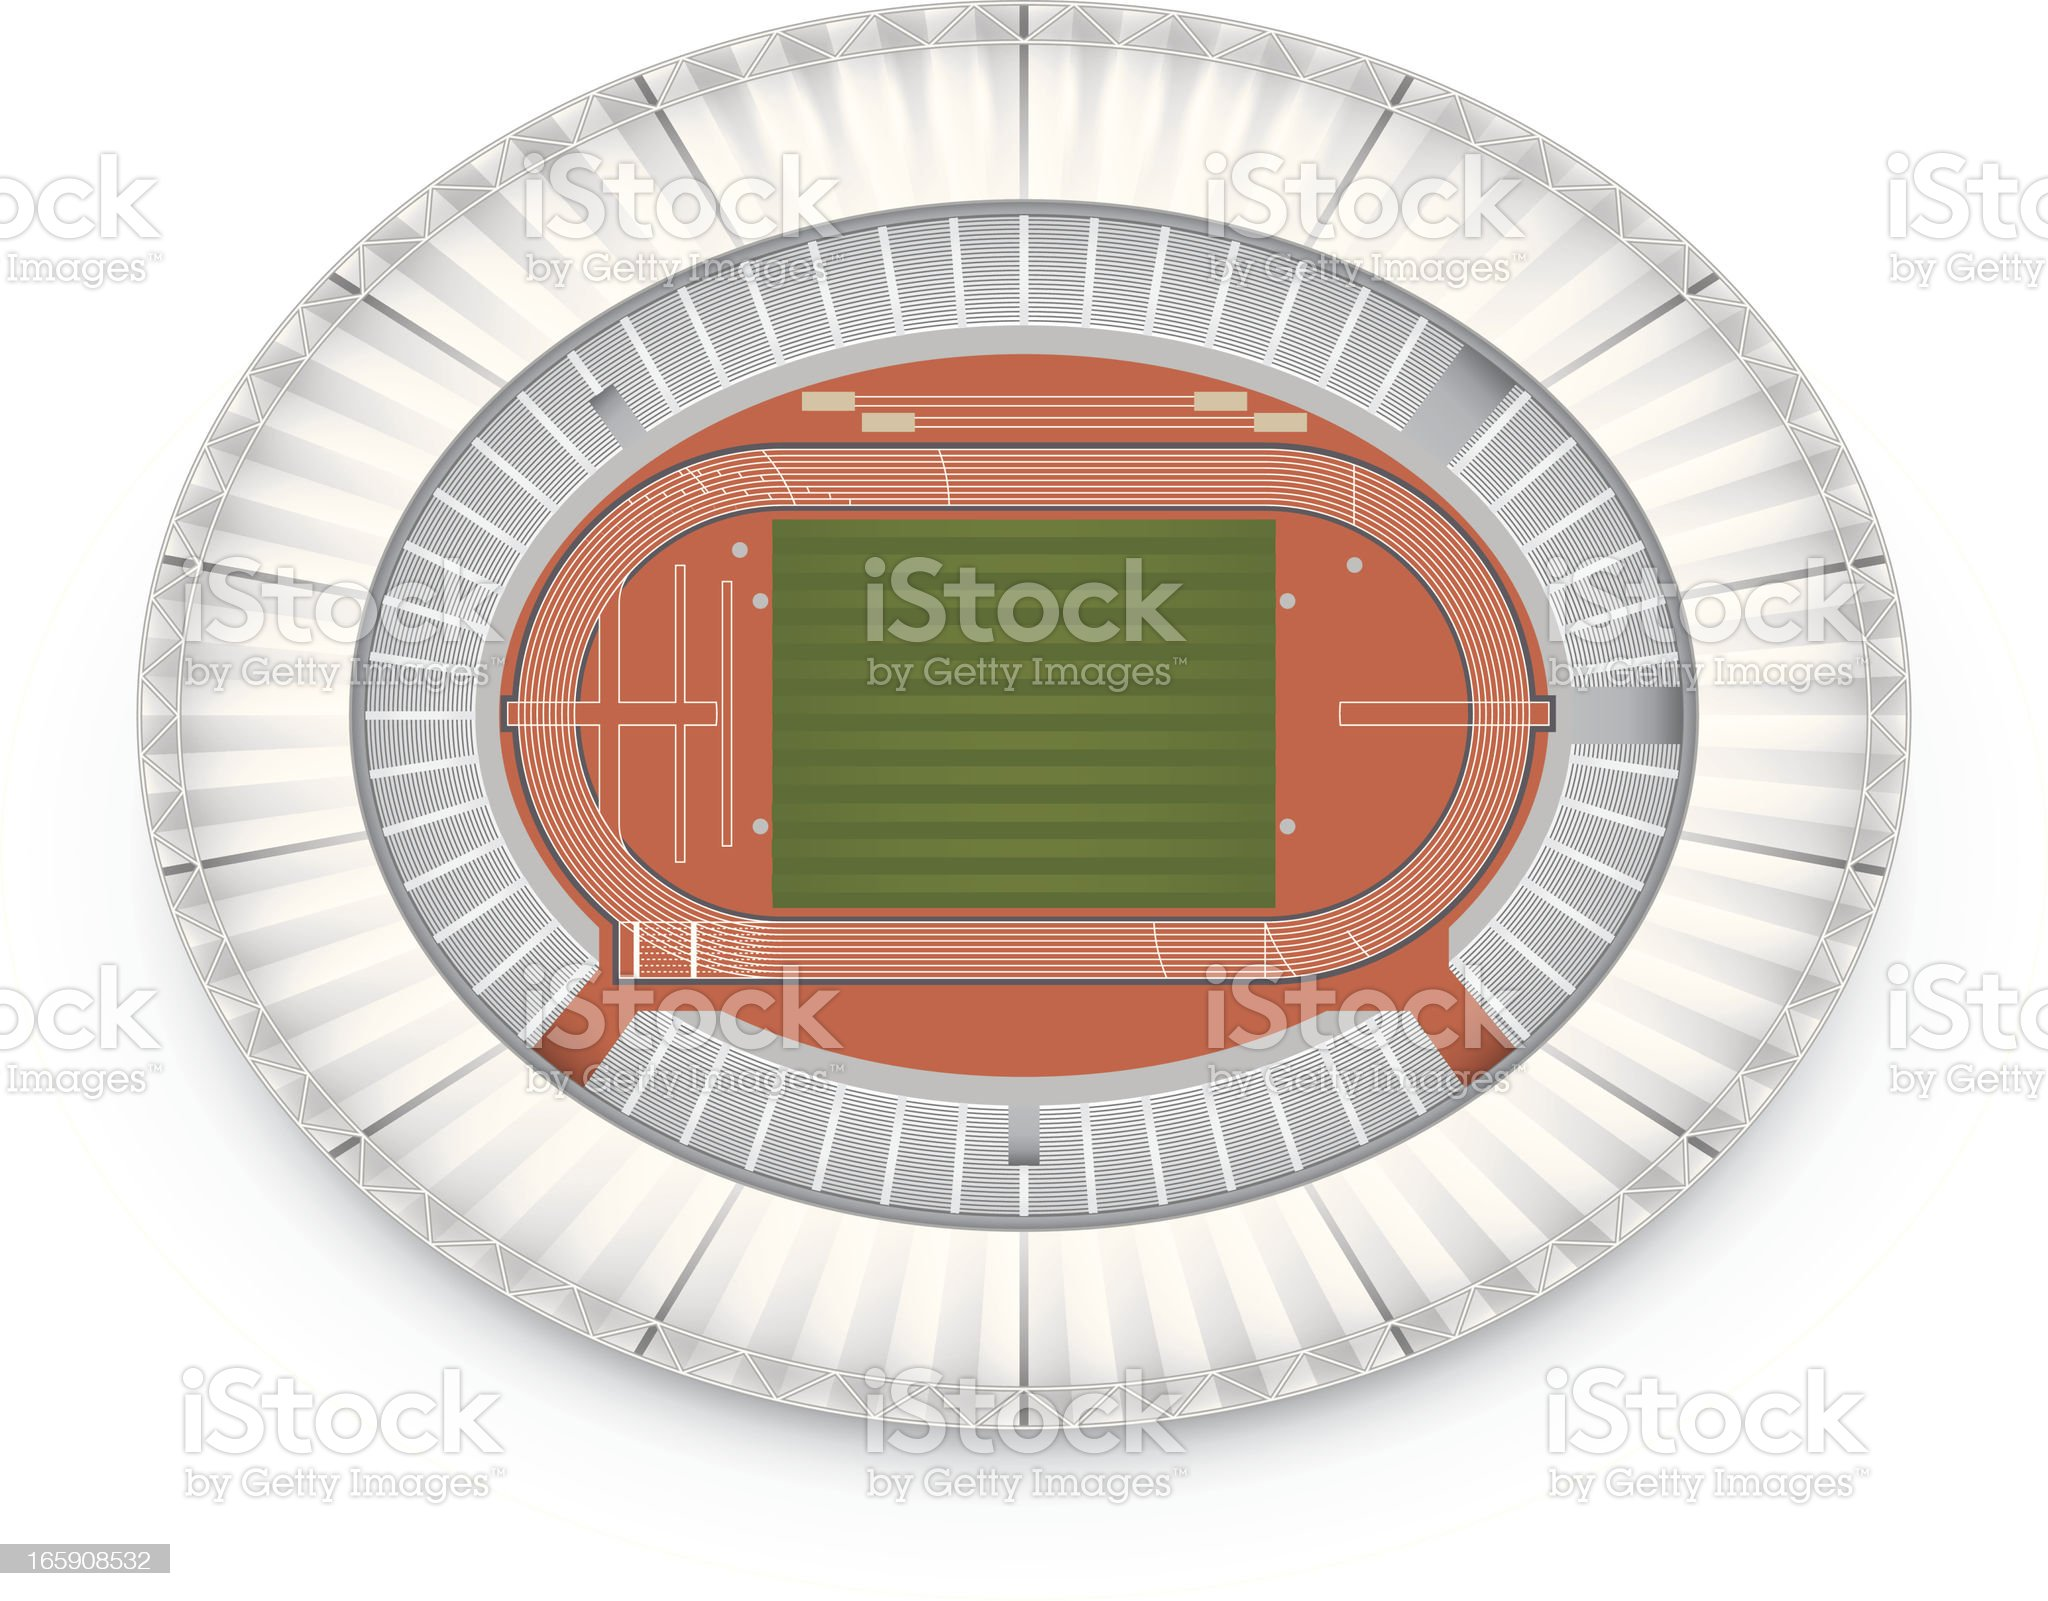 Track and field (Olympic Stadium - London 2012) royalty-free stock vector art